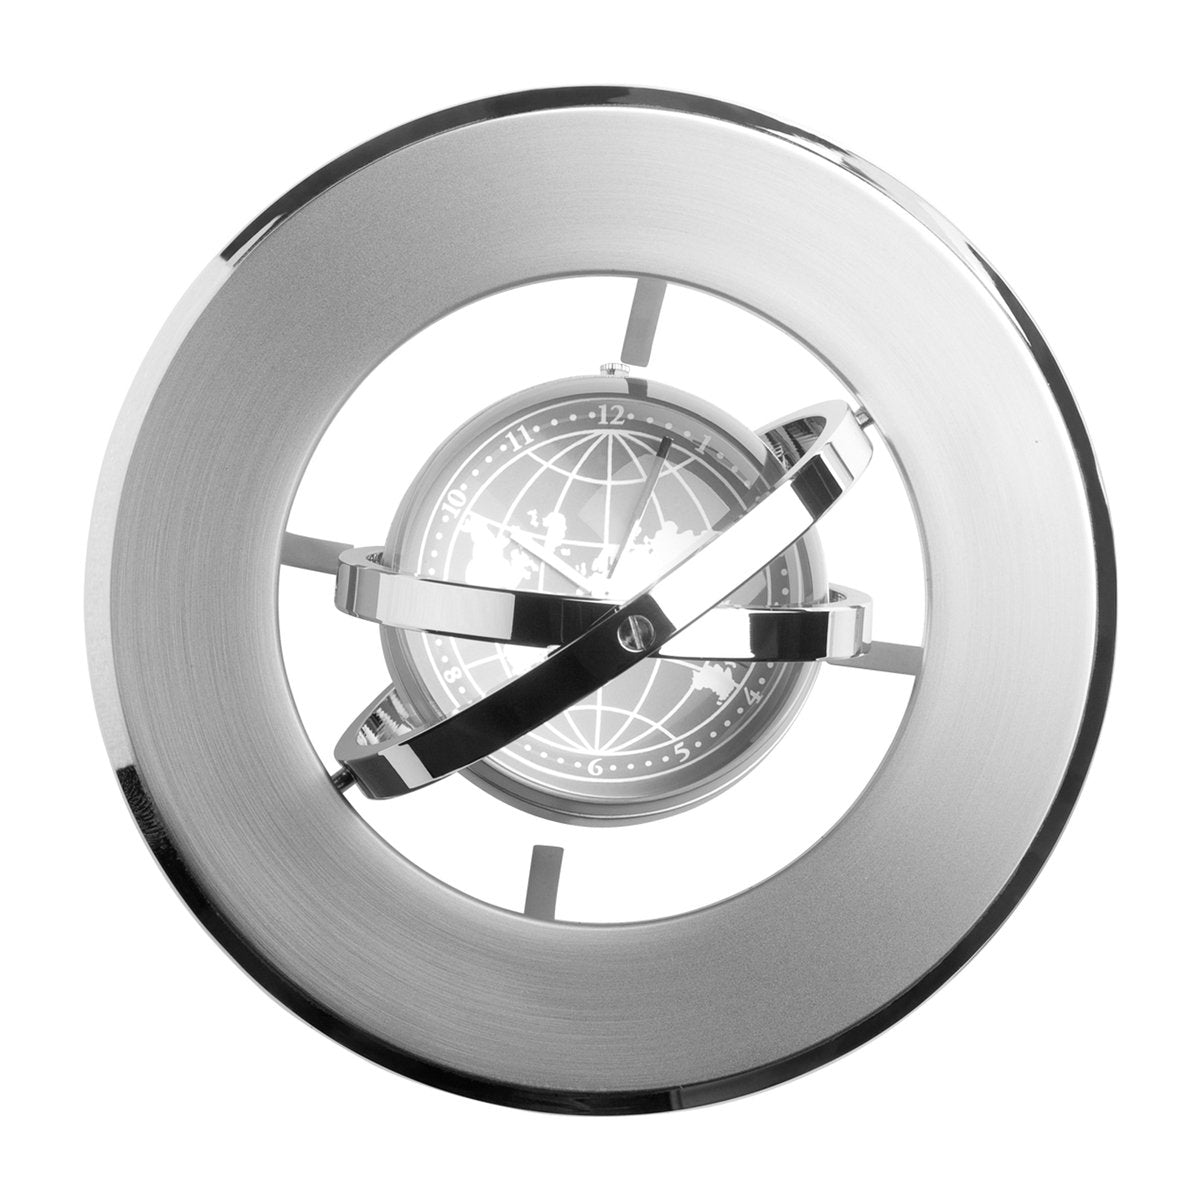 brandsego - REFLECTS Desktop Clock-LANGREO L-NA7279